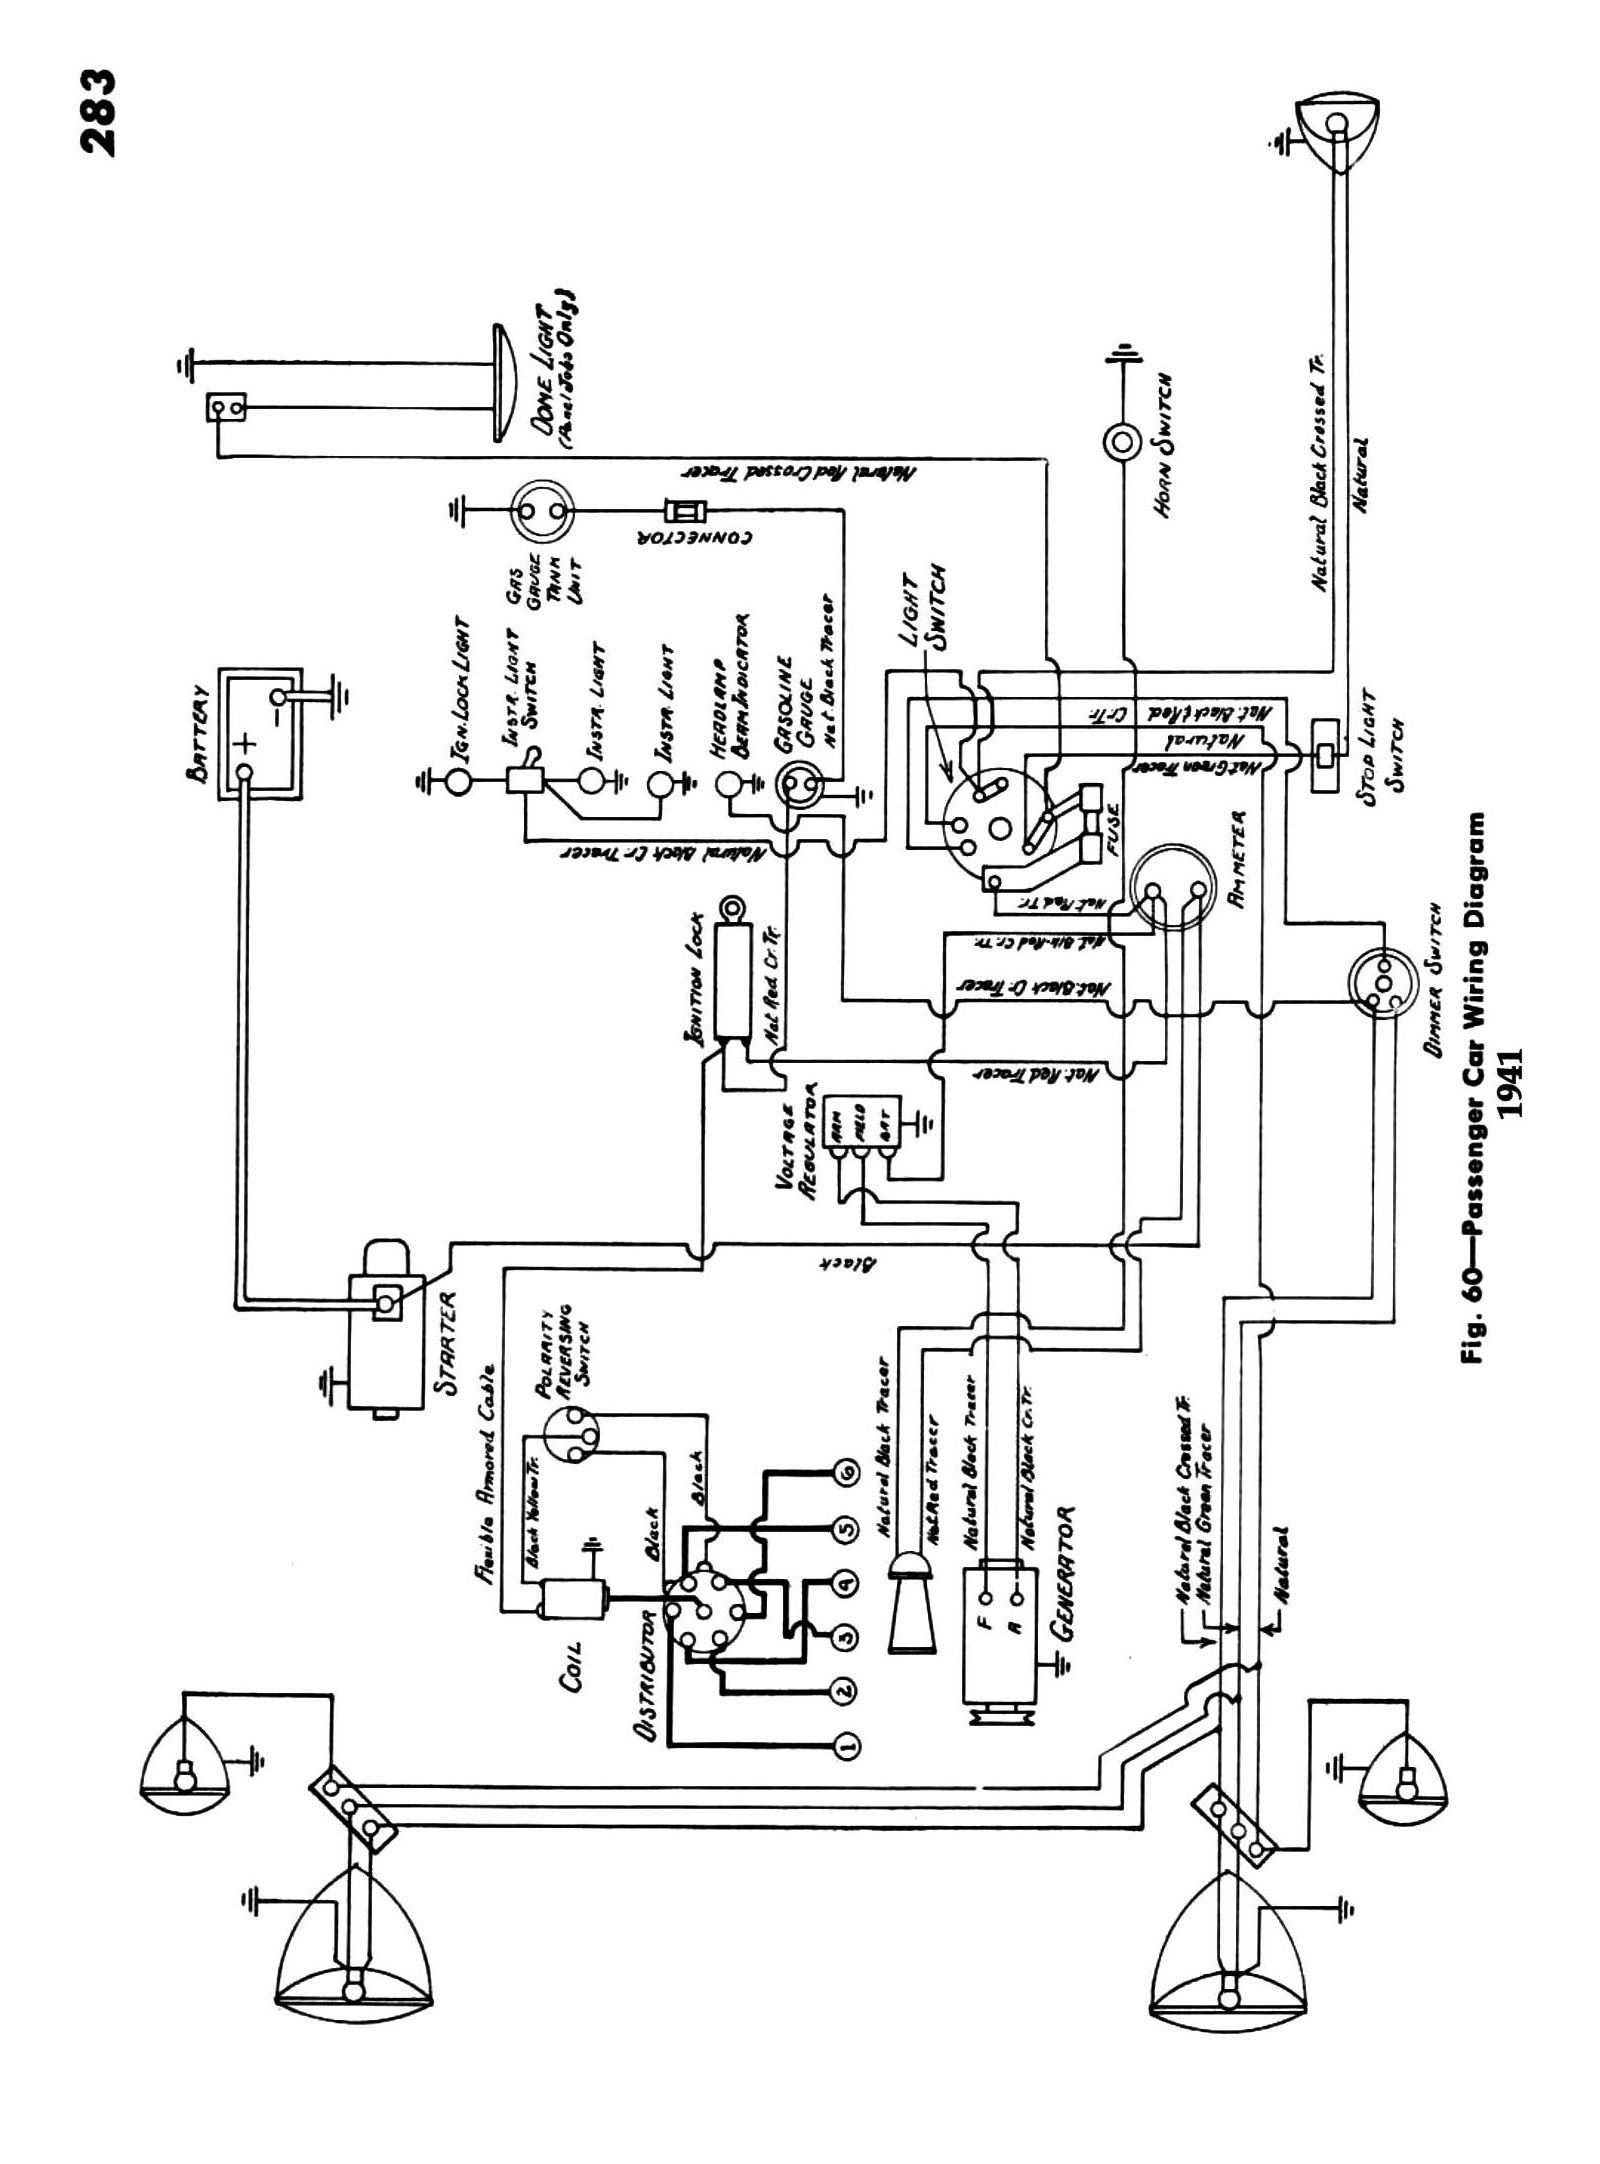 hight resolution of chevy wiring diagrams 1941 passenger car wiring